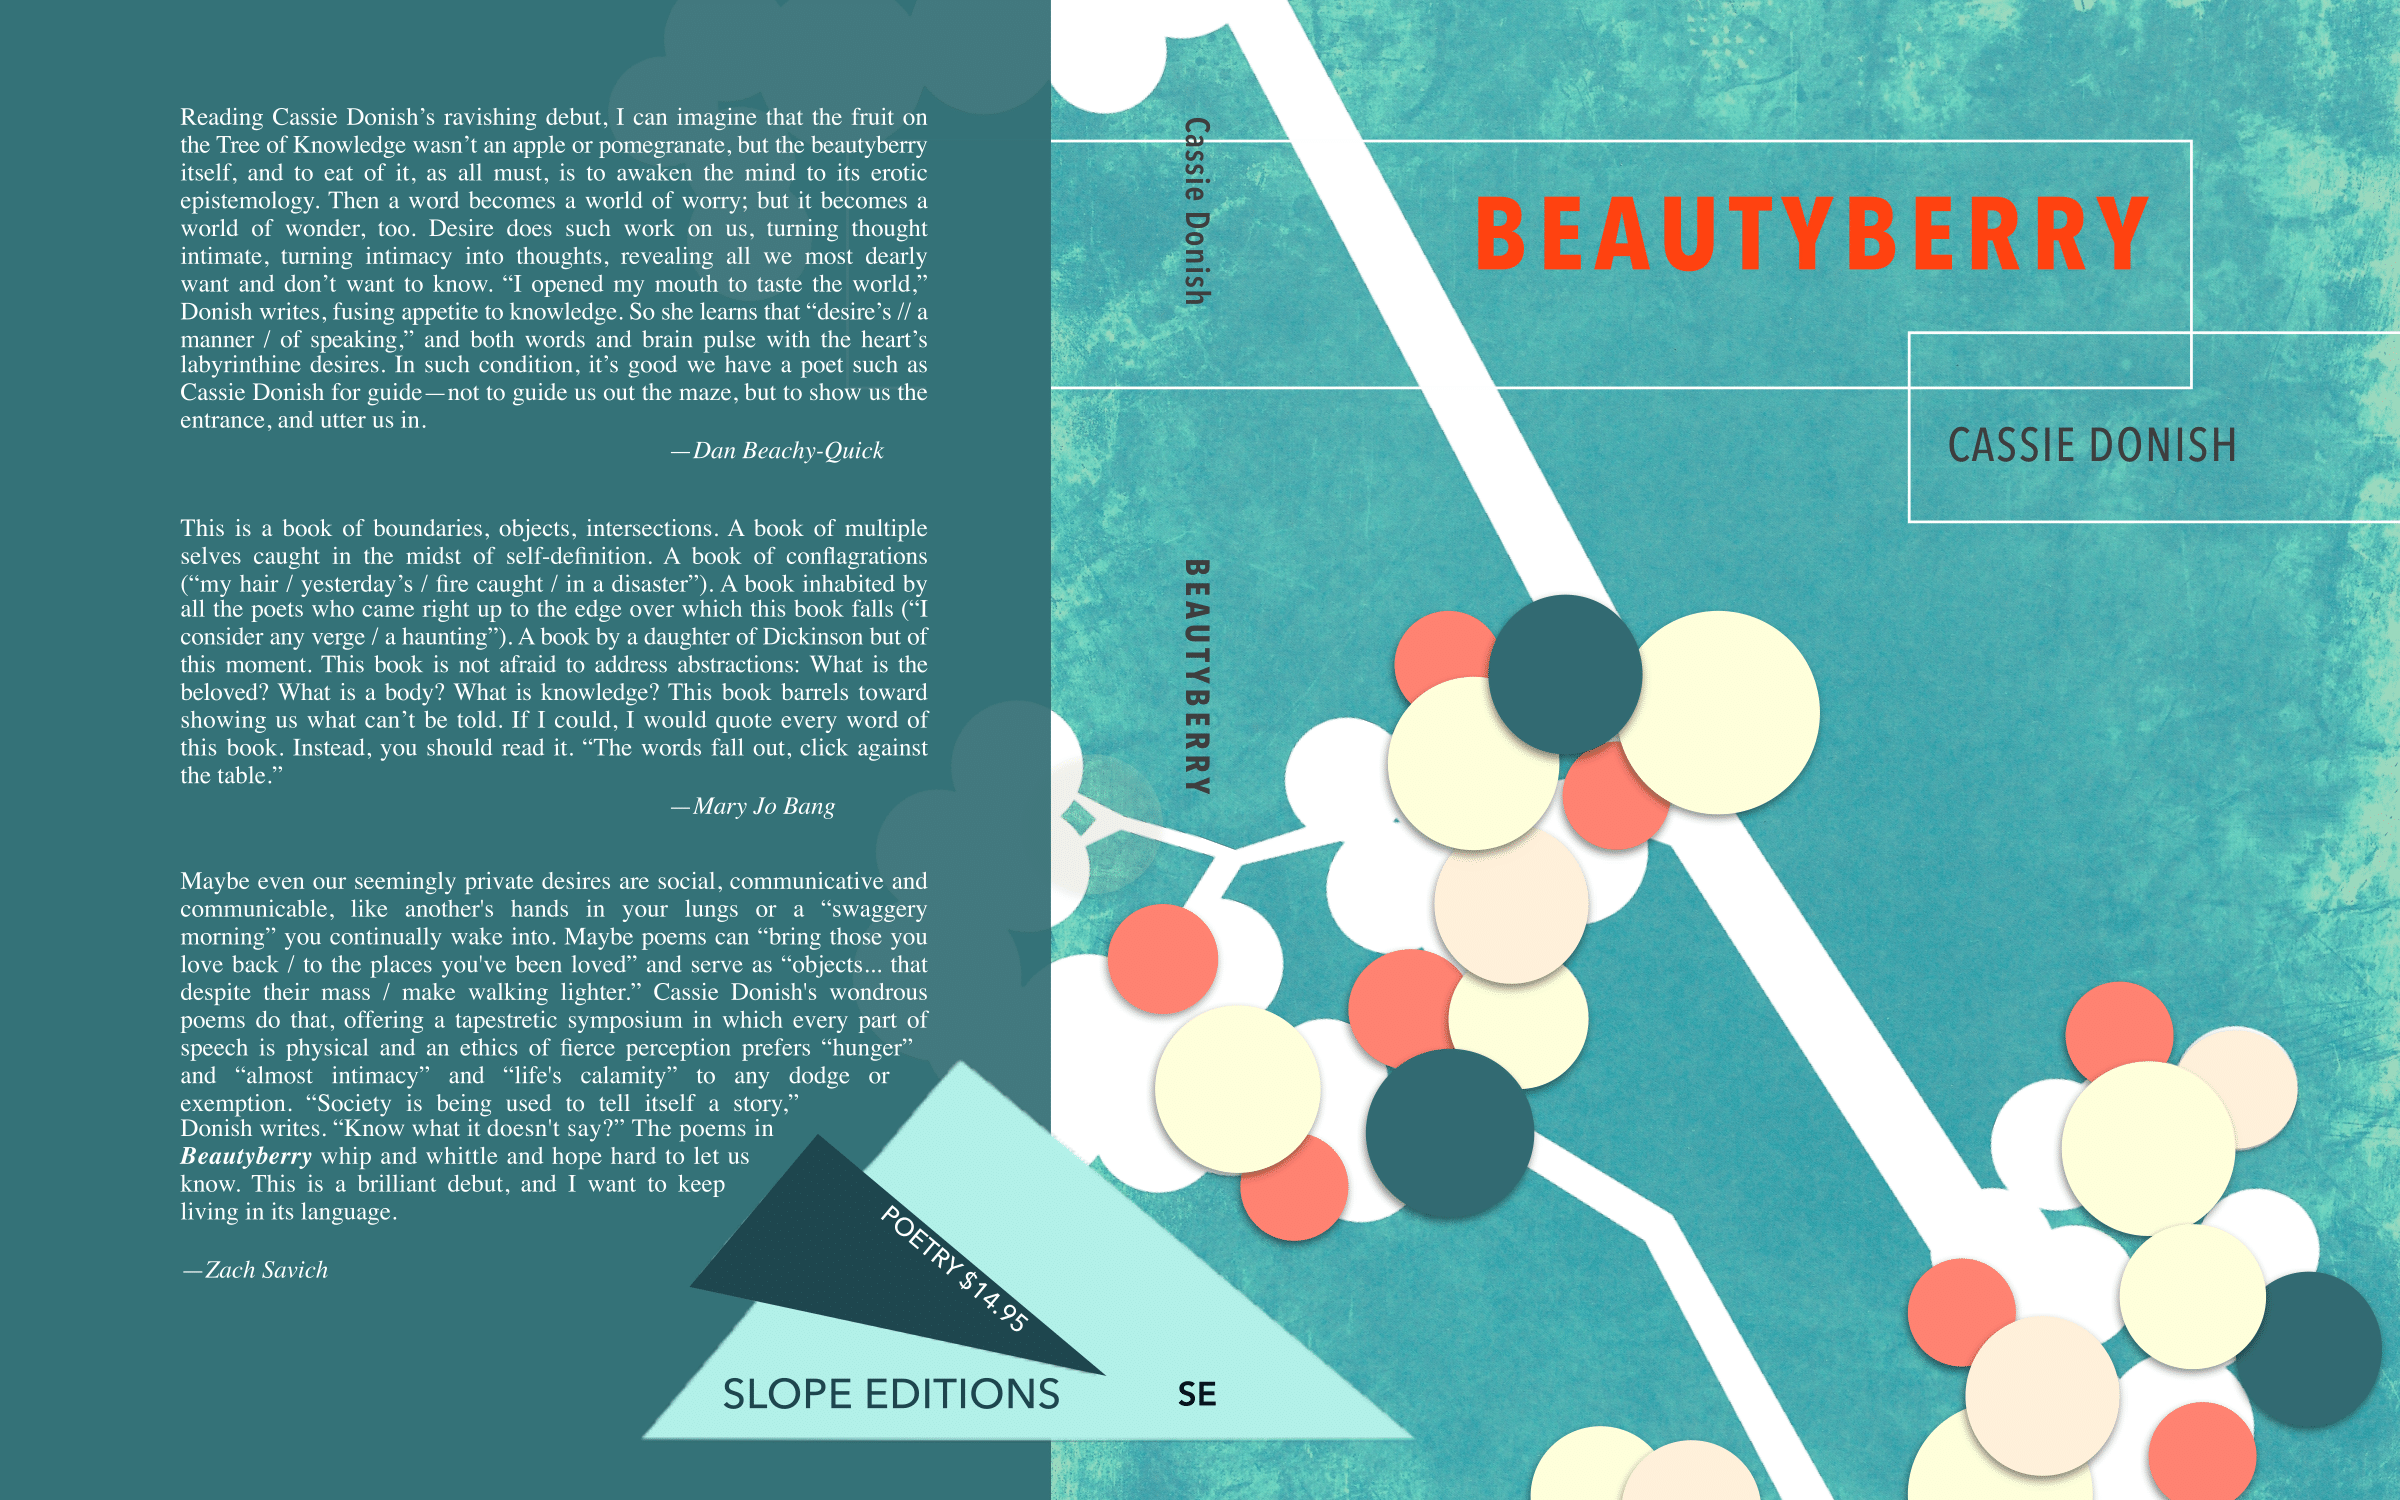 beautyberry cover-1 2.21.54 PM.png